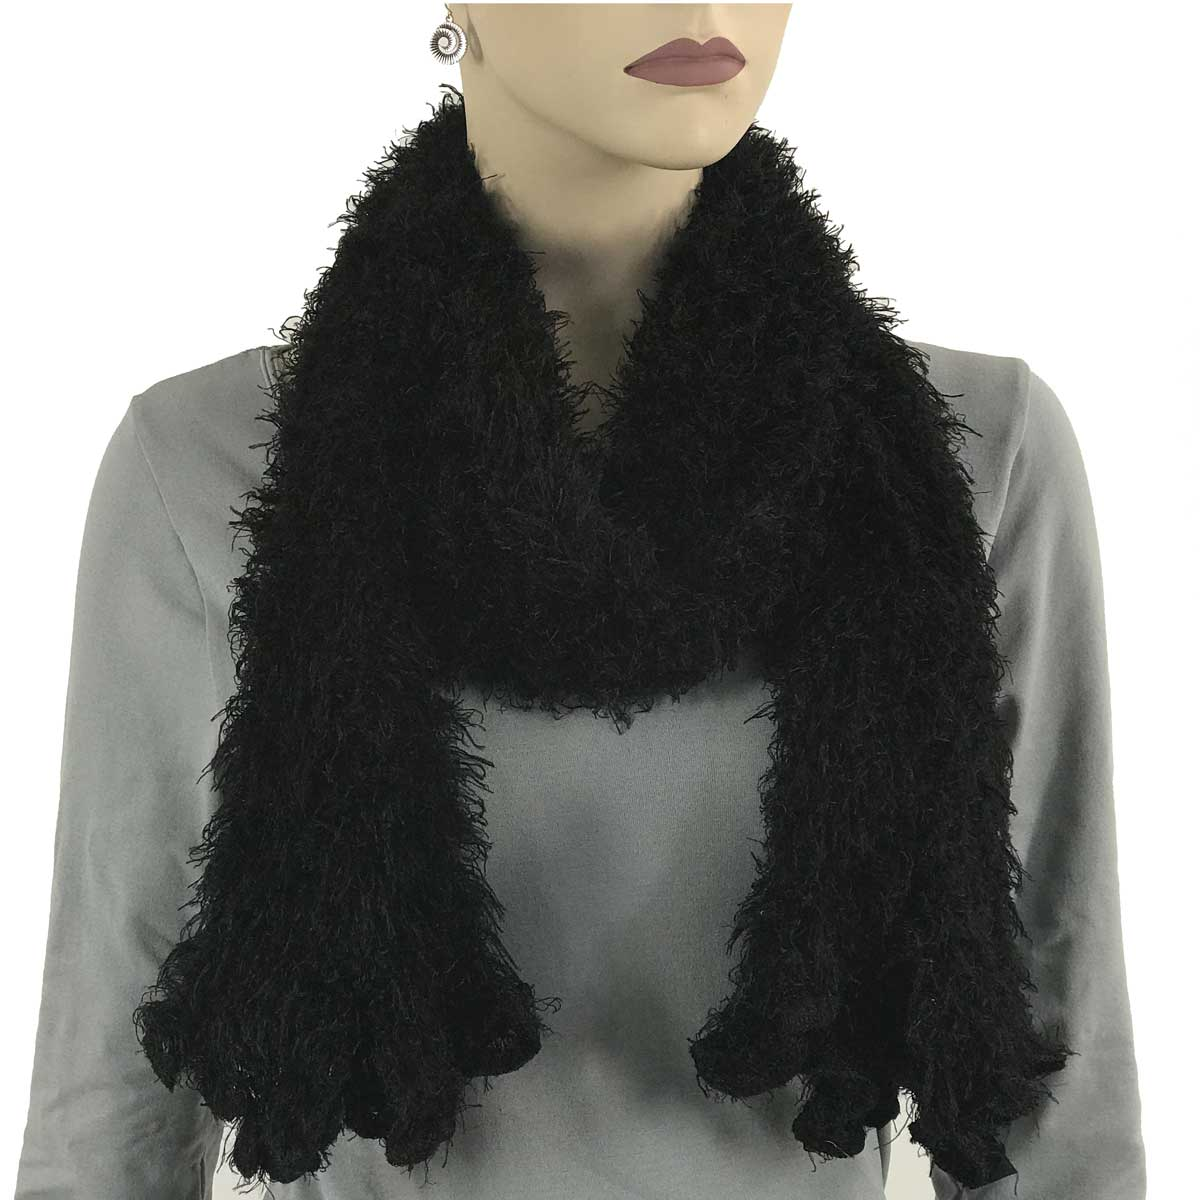 Wholesale Original Moa Boa Magic Scarves  Black Moa Boa Magic Scarf -